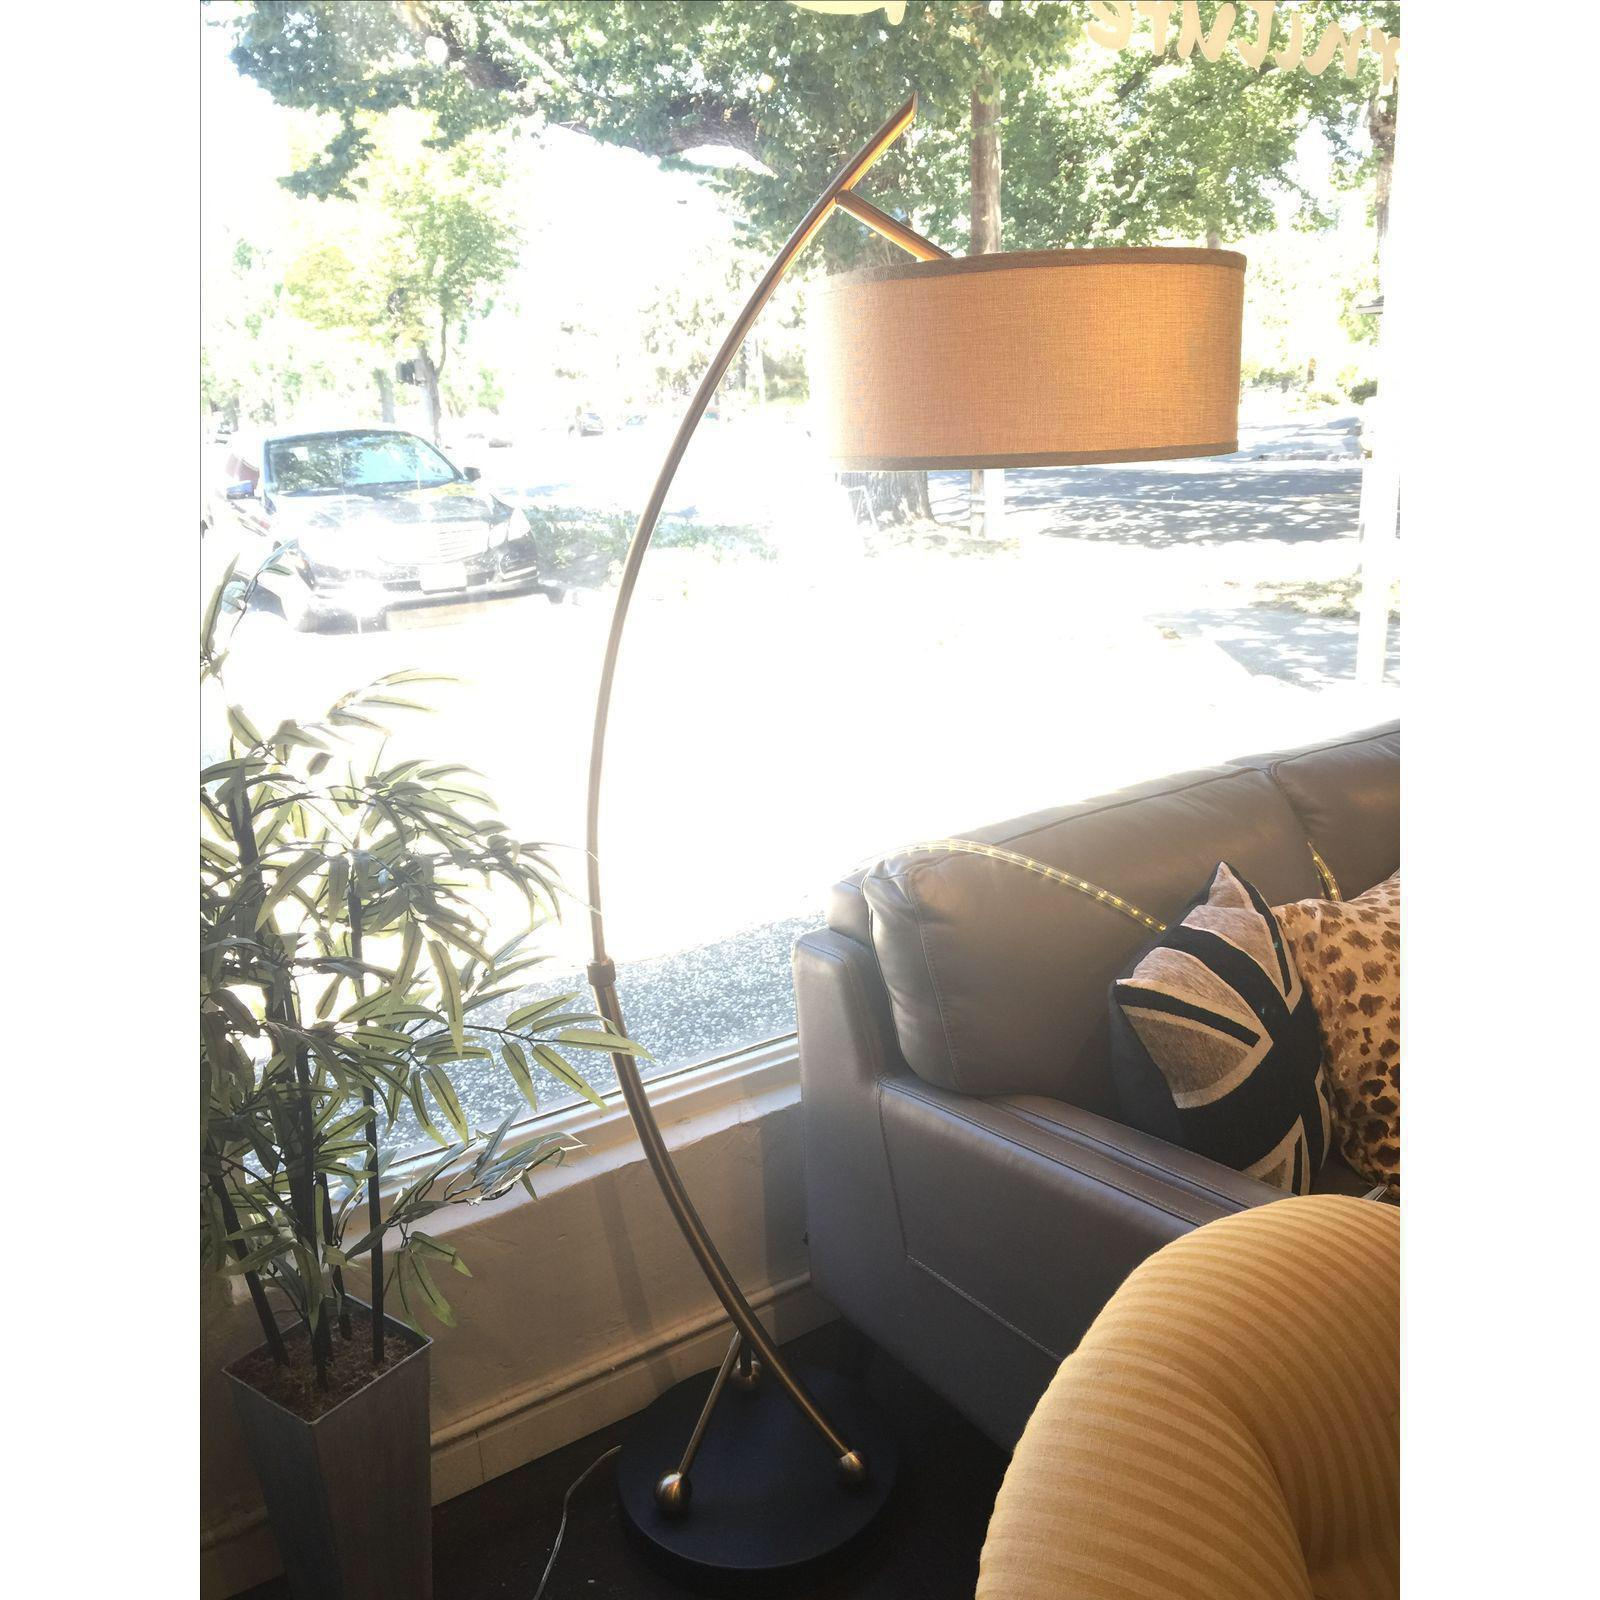 brass arc lamp overarching large and graceful arc lamp the metal is brushed brass the shade features dramatic brushed brass floor lamp chairish